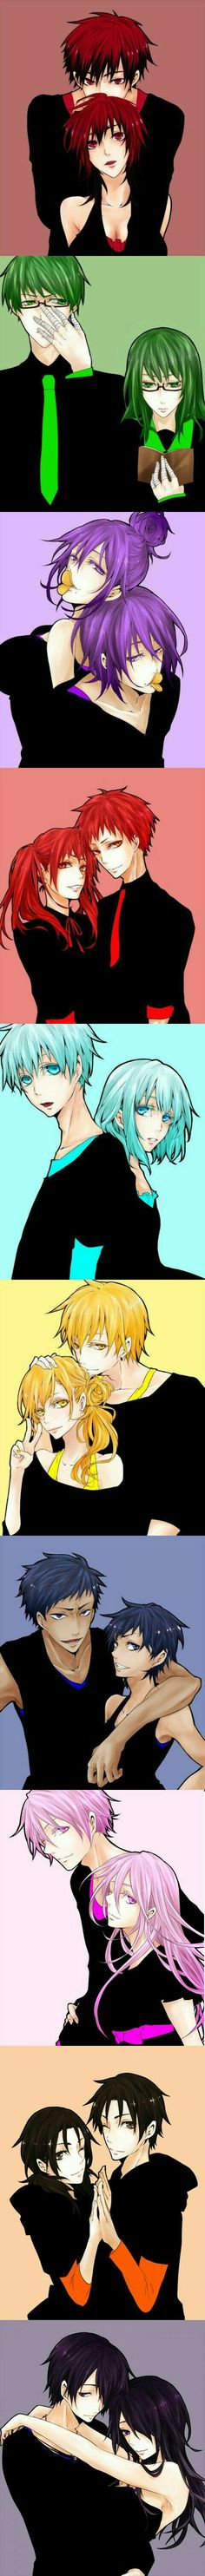 Kagami siblings would probably just be your normal sibling relationship Midorima siblings would probably have a quiet relationship around them. Y'know cuz they prefer books and stuufs, that's their bonding lol. Atsushi siblings would probably bond hella lot because of snacks Same goes for Kise Sibljngs, but their more into looks Akashis would probably have a proffessionaly relationship Kurokos... Well it think, the best example for this is the sibling relationship of Tanaka ang Rino from…